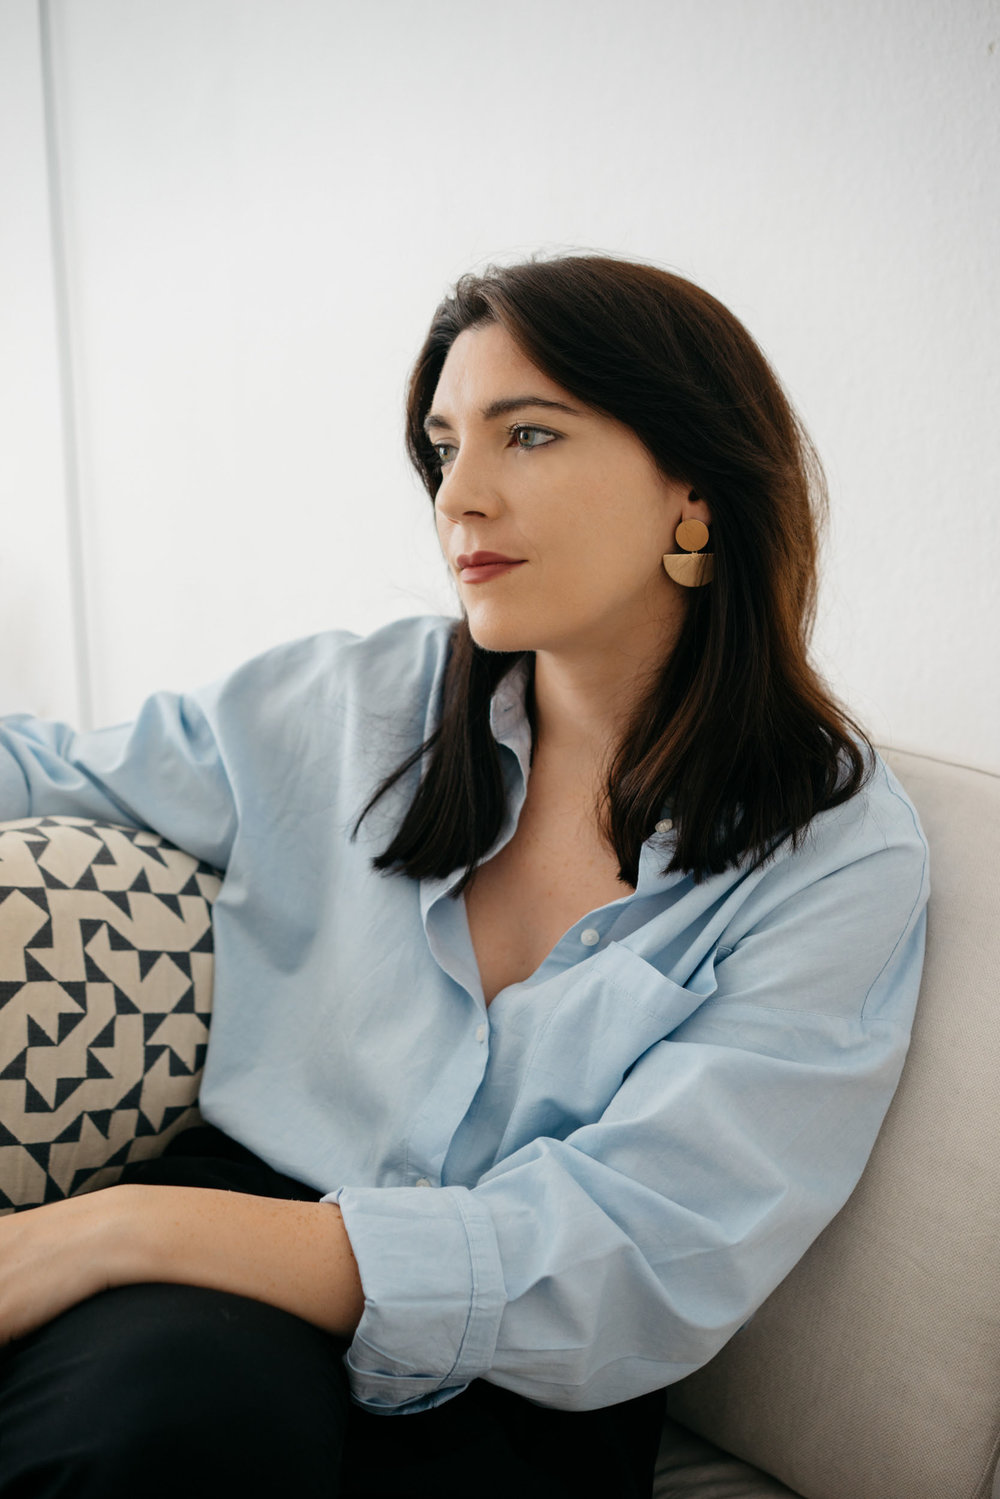 Profile of interior designer and set designer, Cally O'Loughlin from her office in Berlin where she also offers her packages worldwide online via eDesign